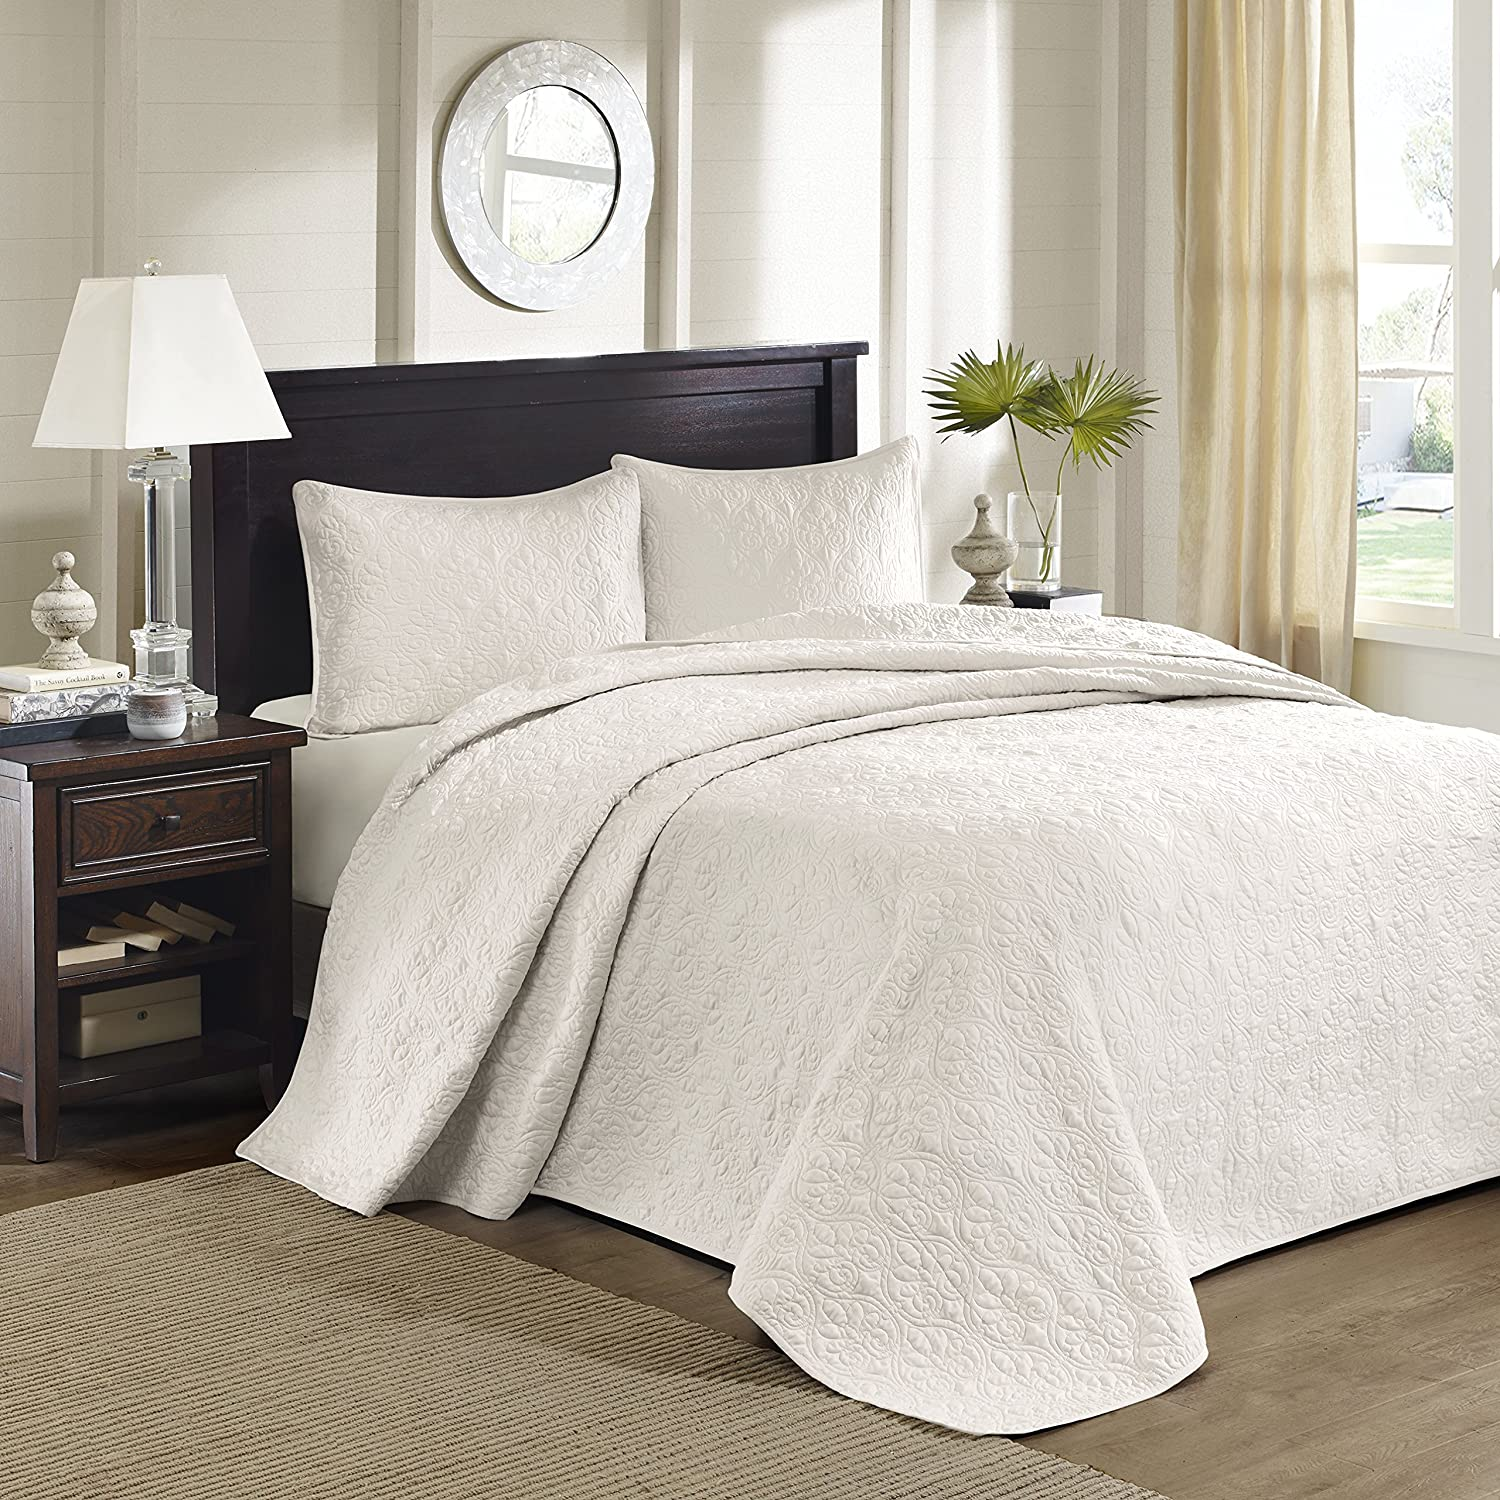 Madison Park Bedding Sets Ease Bedding With Style